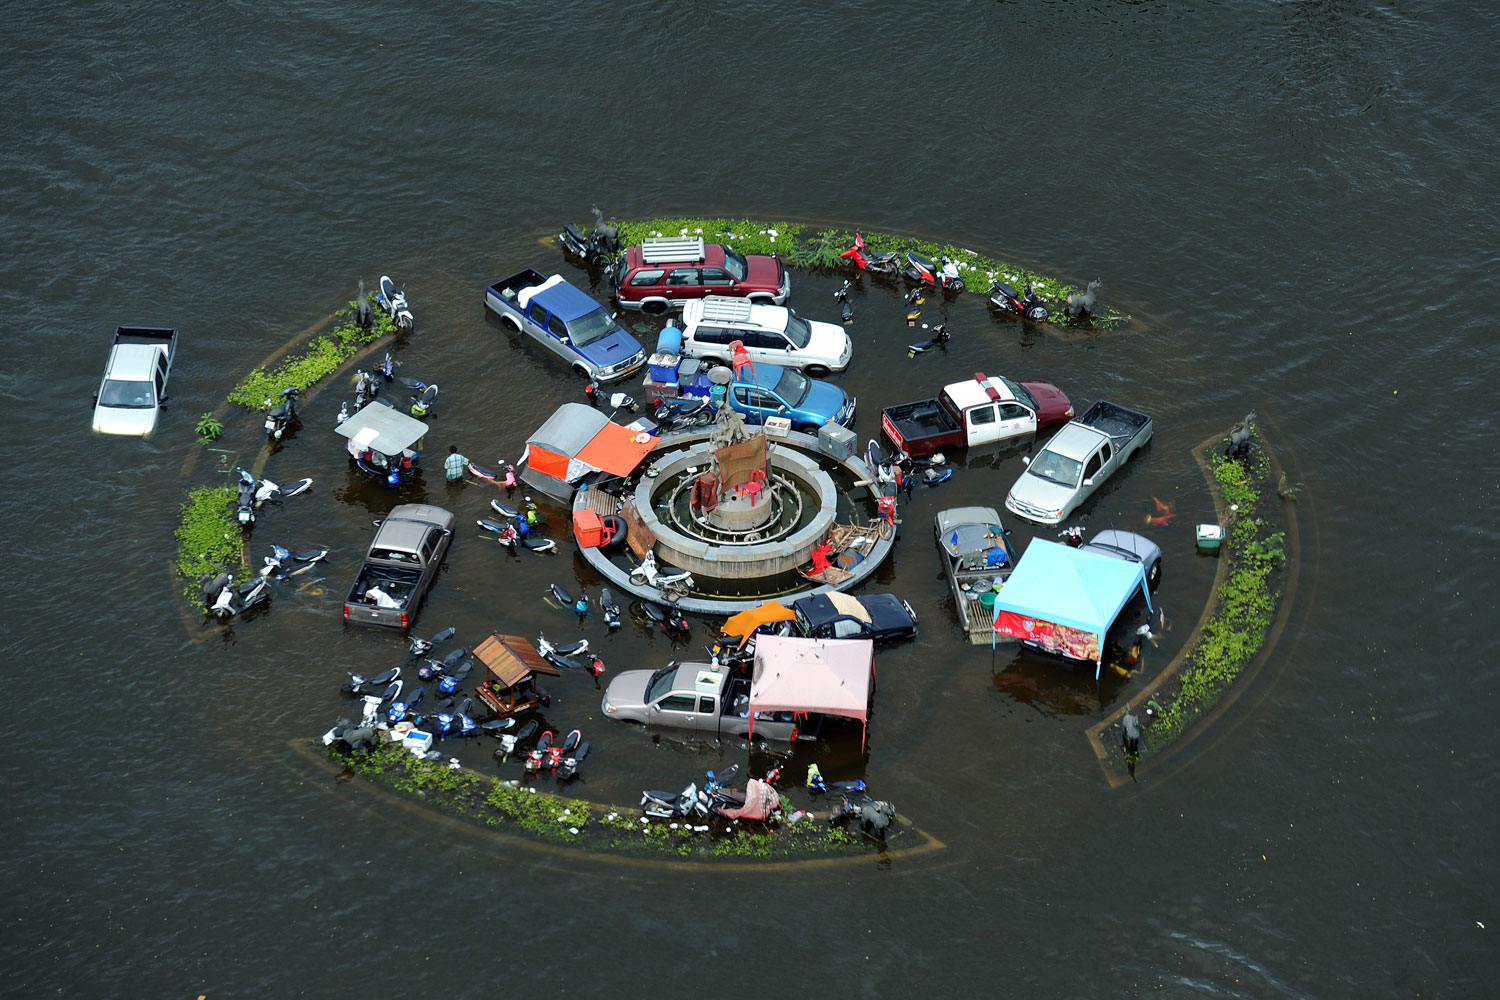 October 16, 2011. In Thailand's ancient capital city of Ayutthaya, a circle of vehicles sit partially submerged in floodwater. Inland flooding that encroached on the modern capital, Bangkok, has claimed 300 lives and displaced tens of thousands.